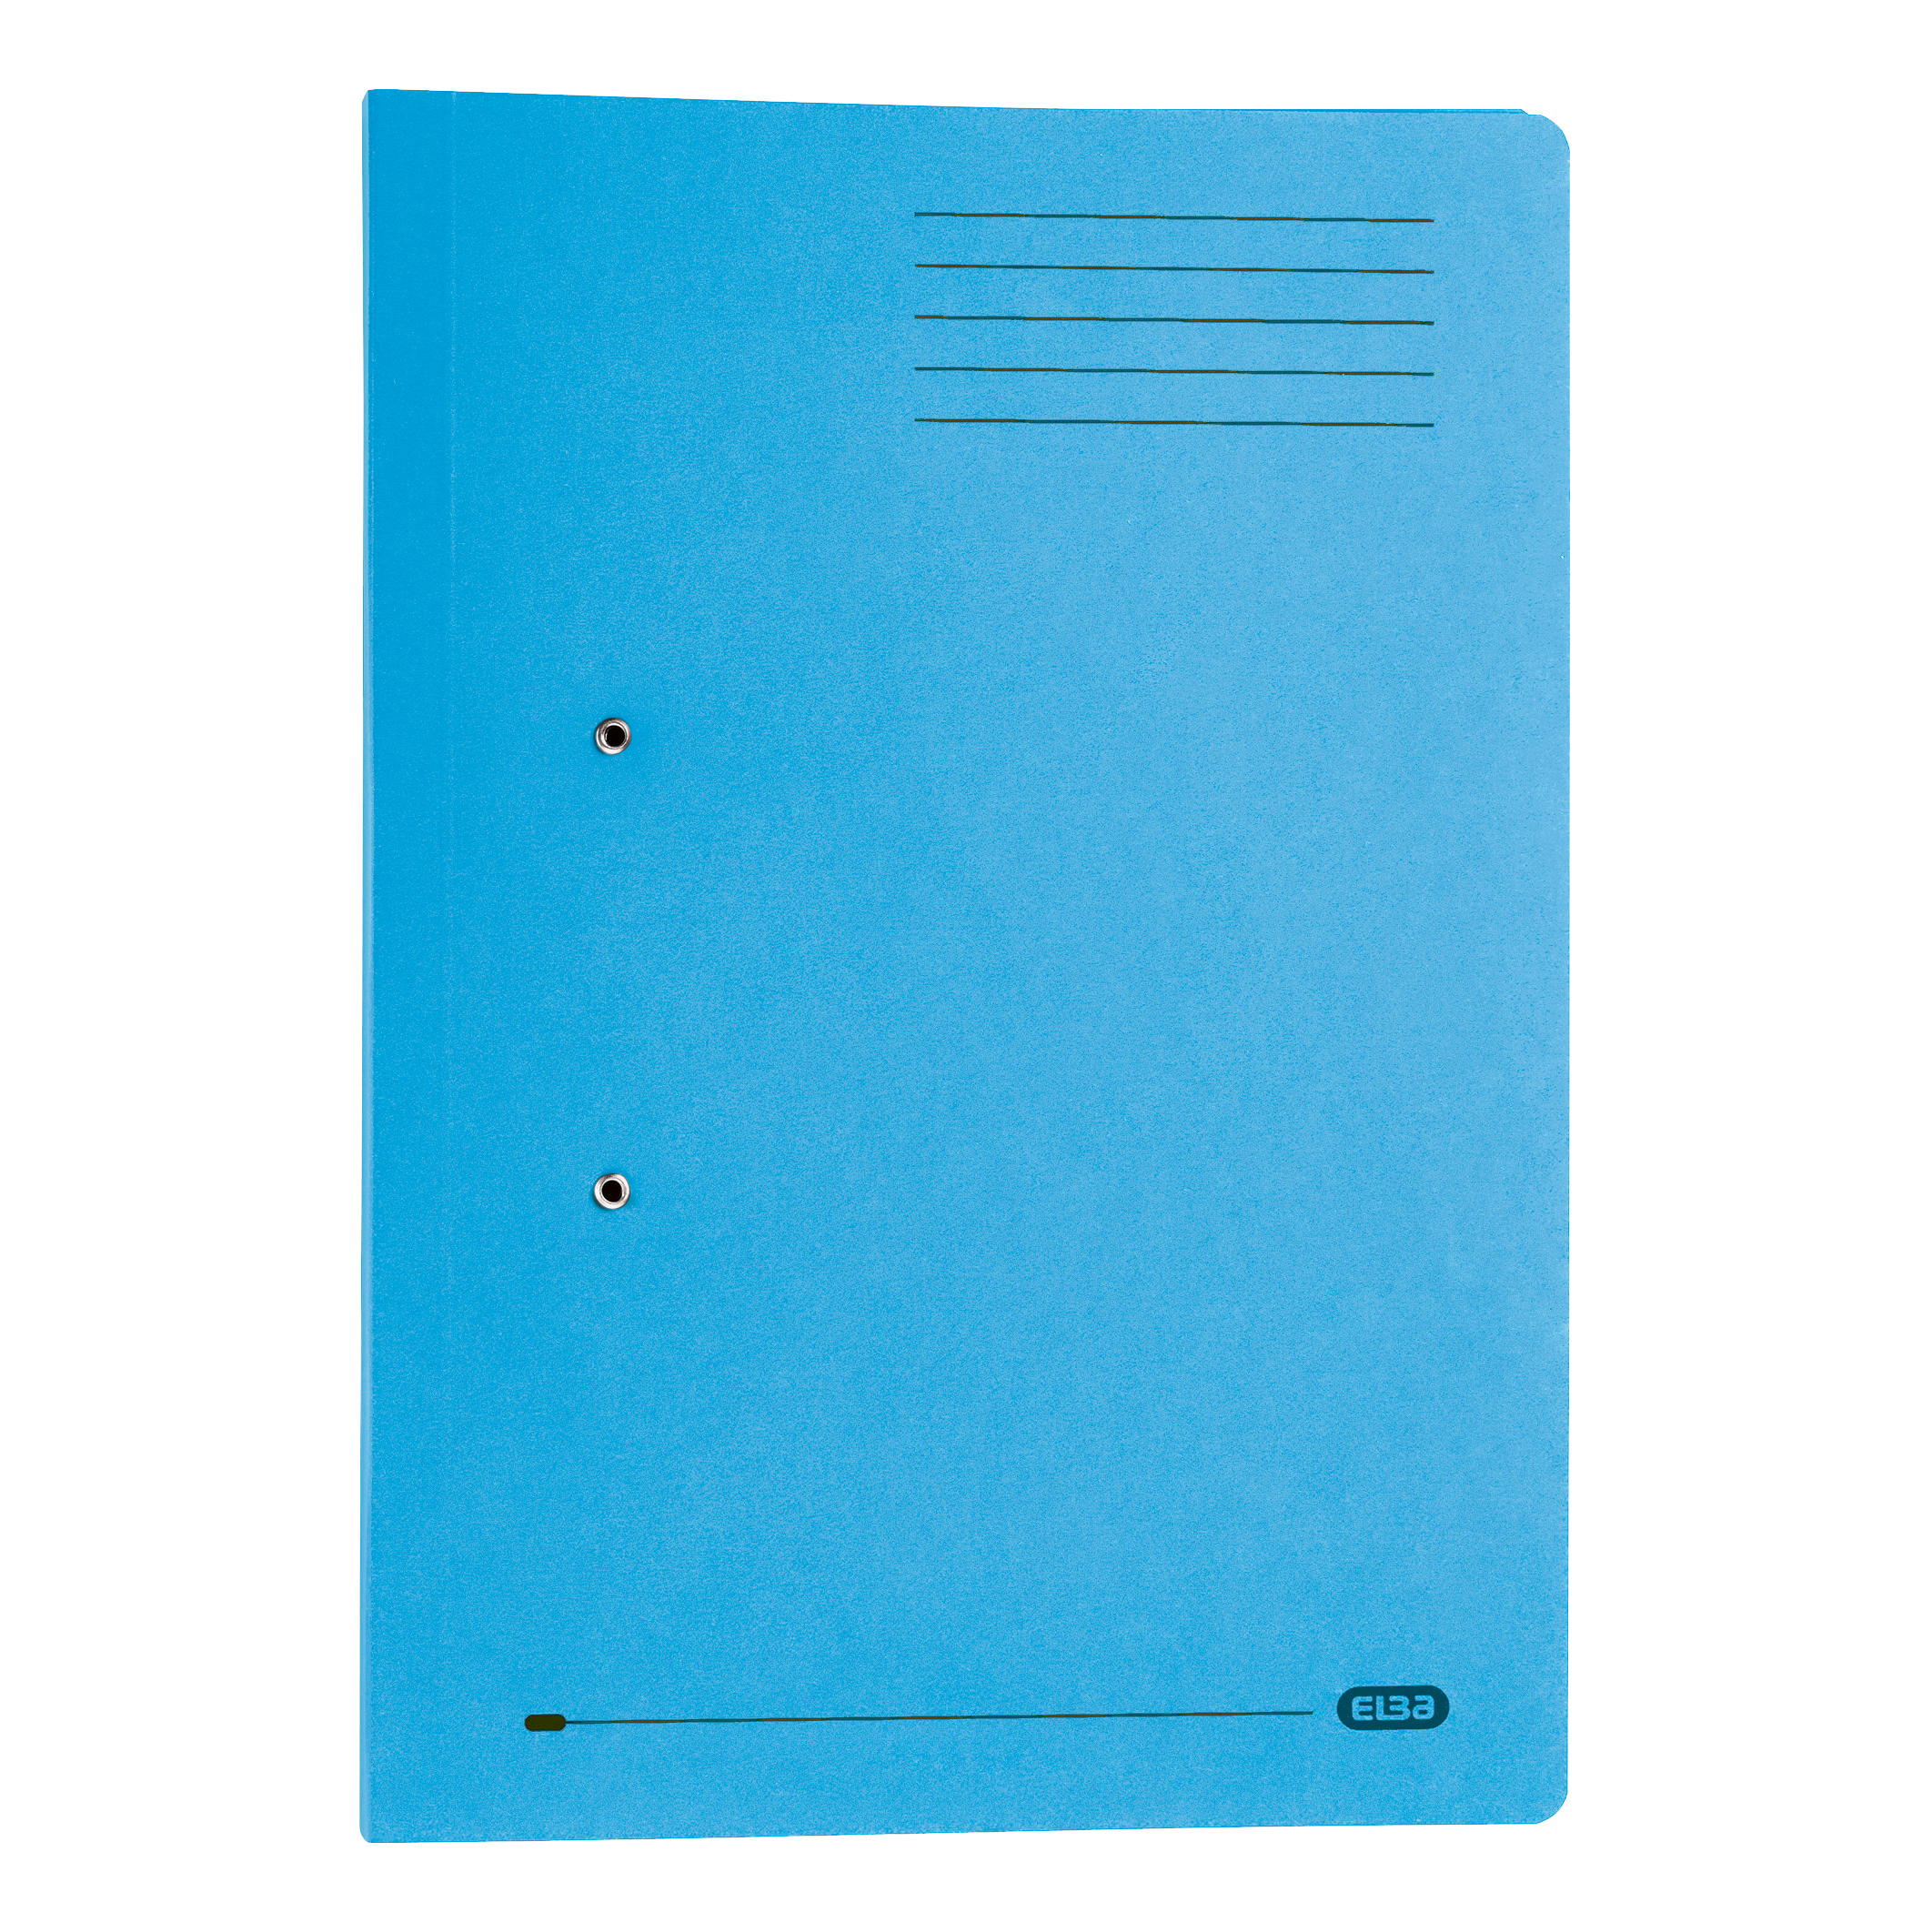 Elba StrongLine Transfer Spring File Recycled 320gsm Foolscap Blue Ref 100090146 [Pack 25] [REDEMPTION]